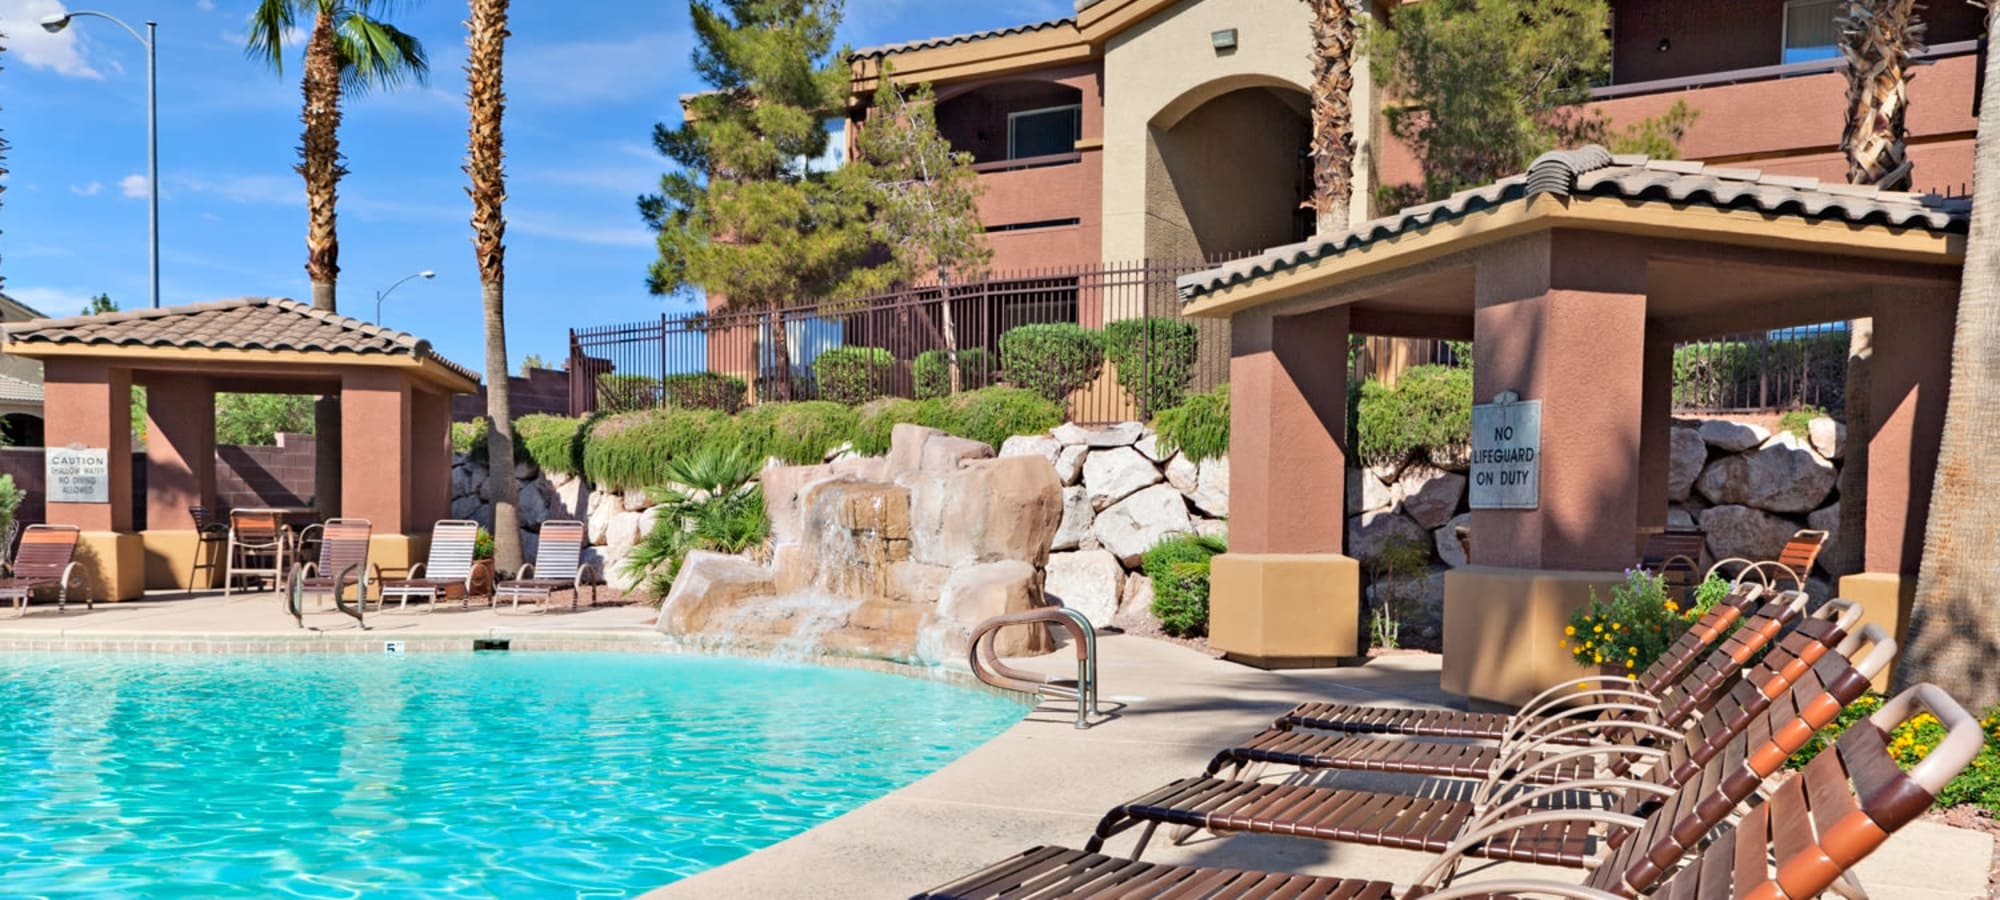 Cabanas and poolside lounge chairs at Allegro at La Entrada in Henderson, Nevada